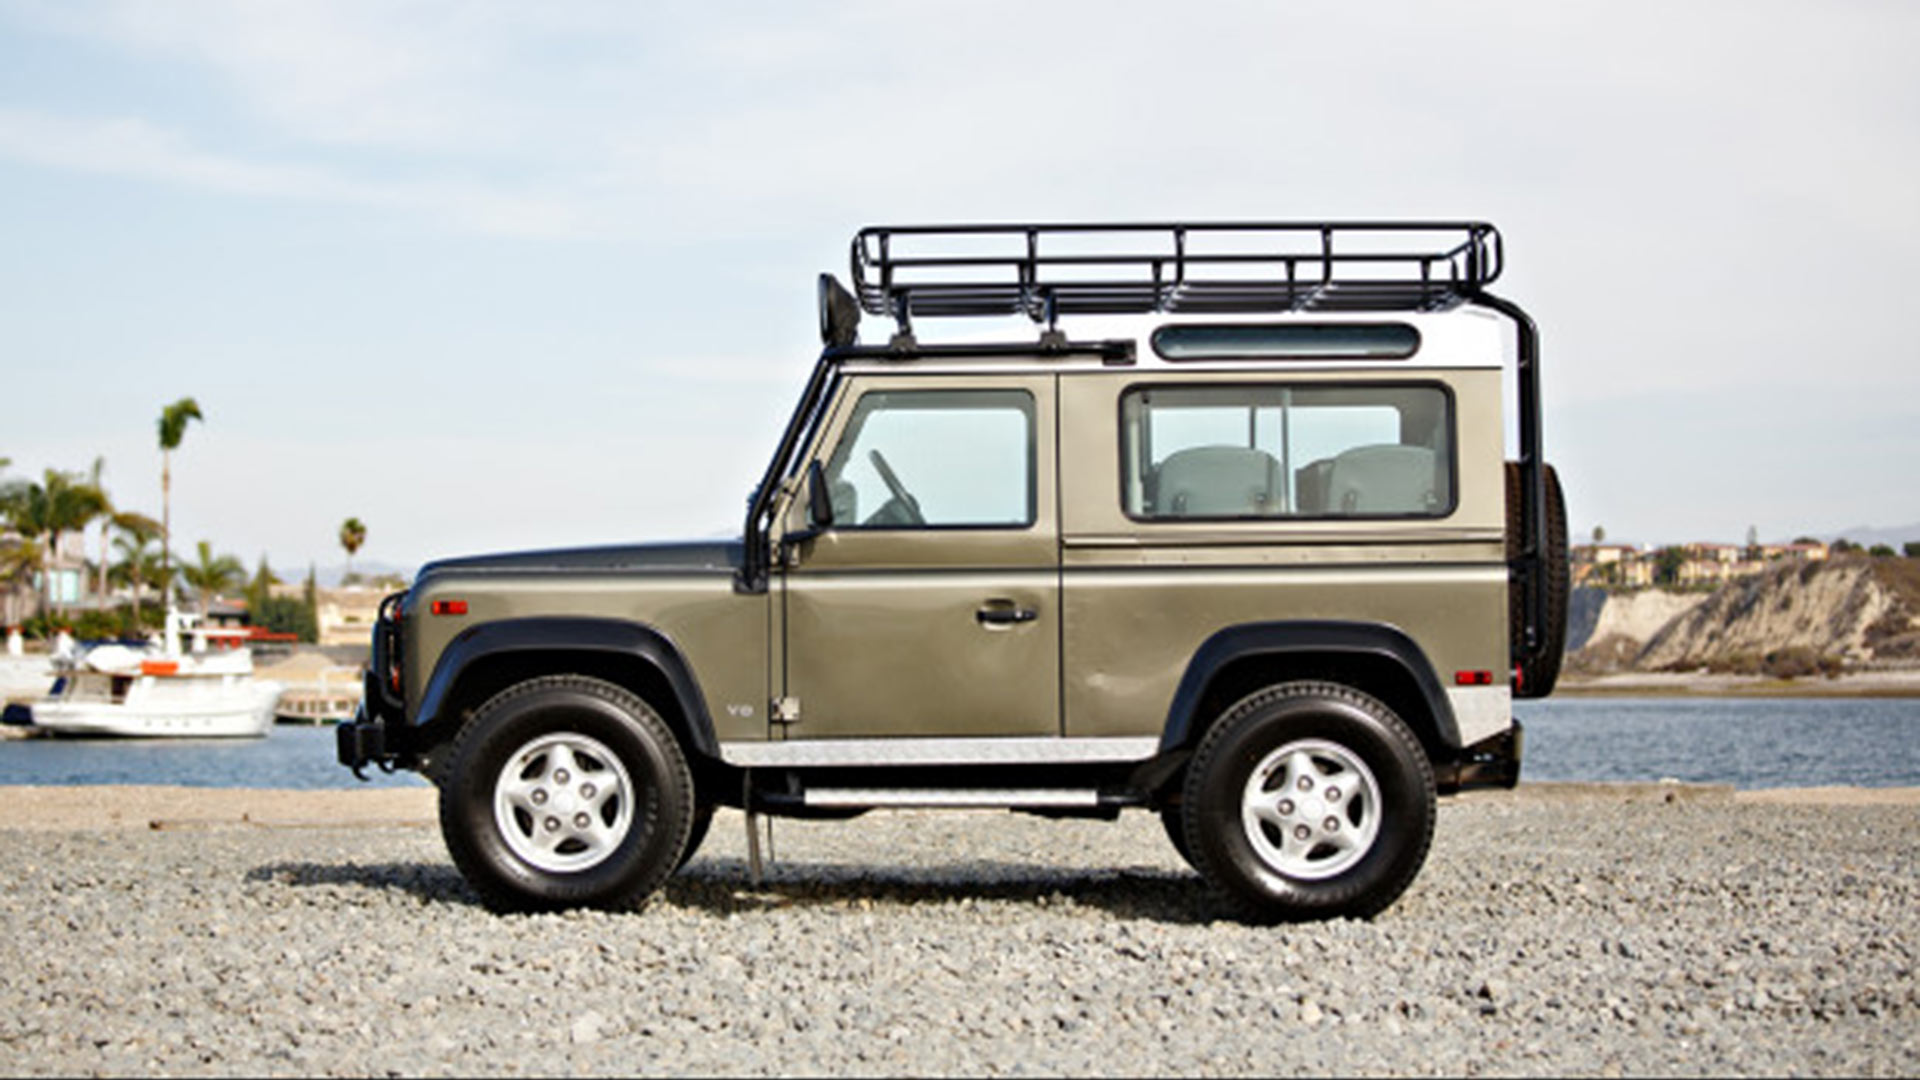 Last NAS Land Rover Defender 90 auction